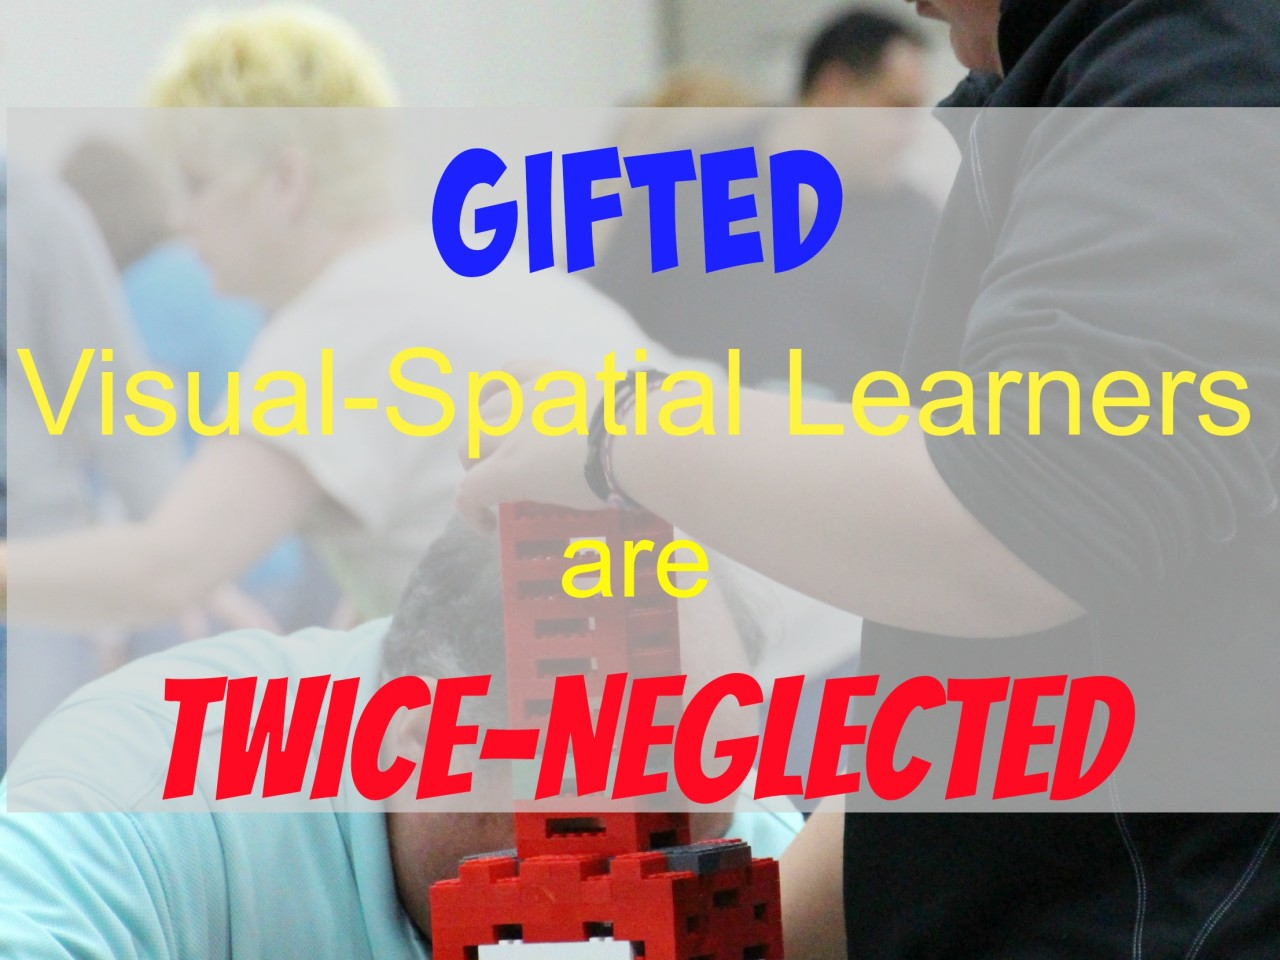 Gifted Visual-Spatial Learners are Twice-Neglected | Crushing Tall Poppies